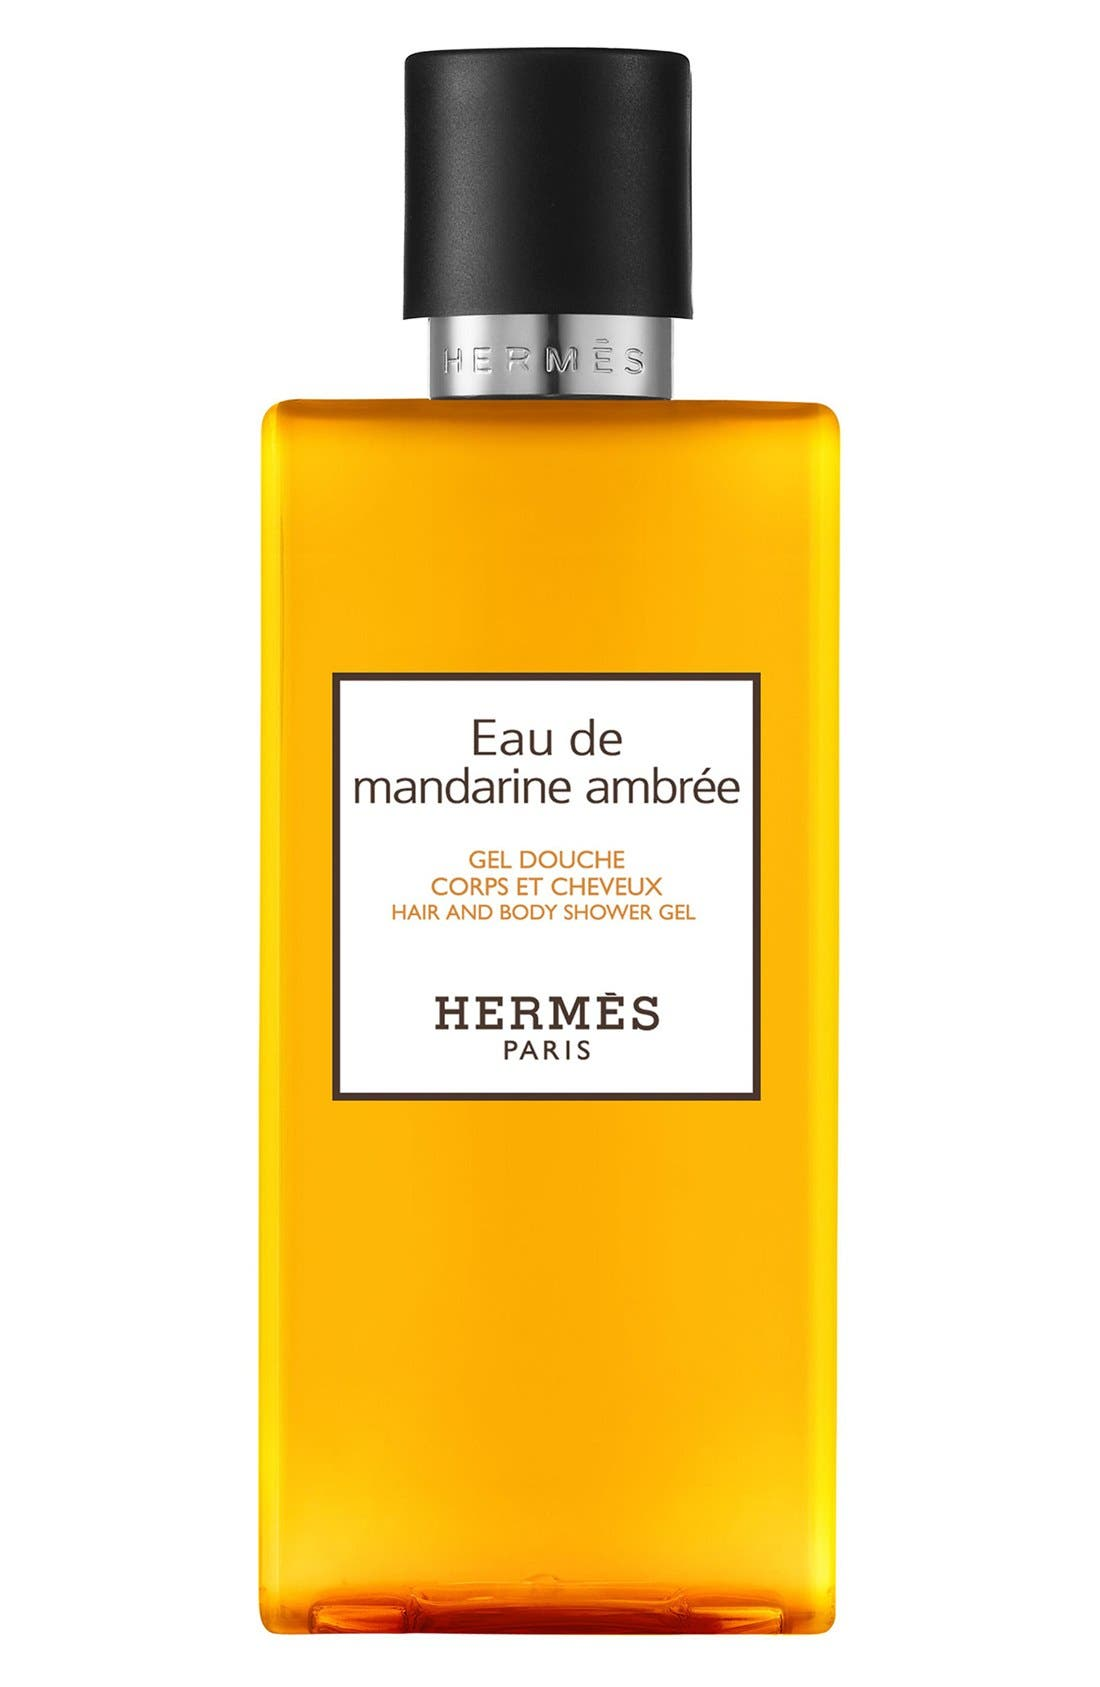 Eau de Mandarine Ambrée - Hair and body shower gel, Main, color, 000